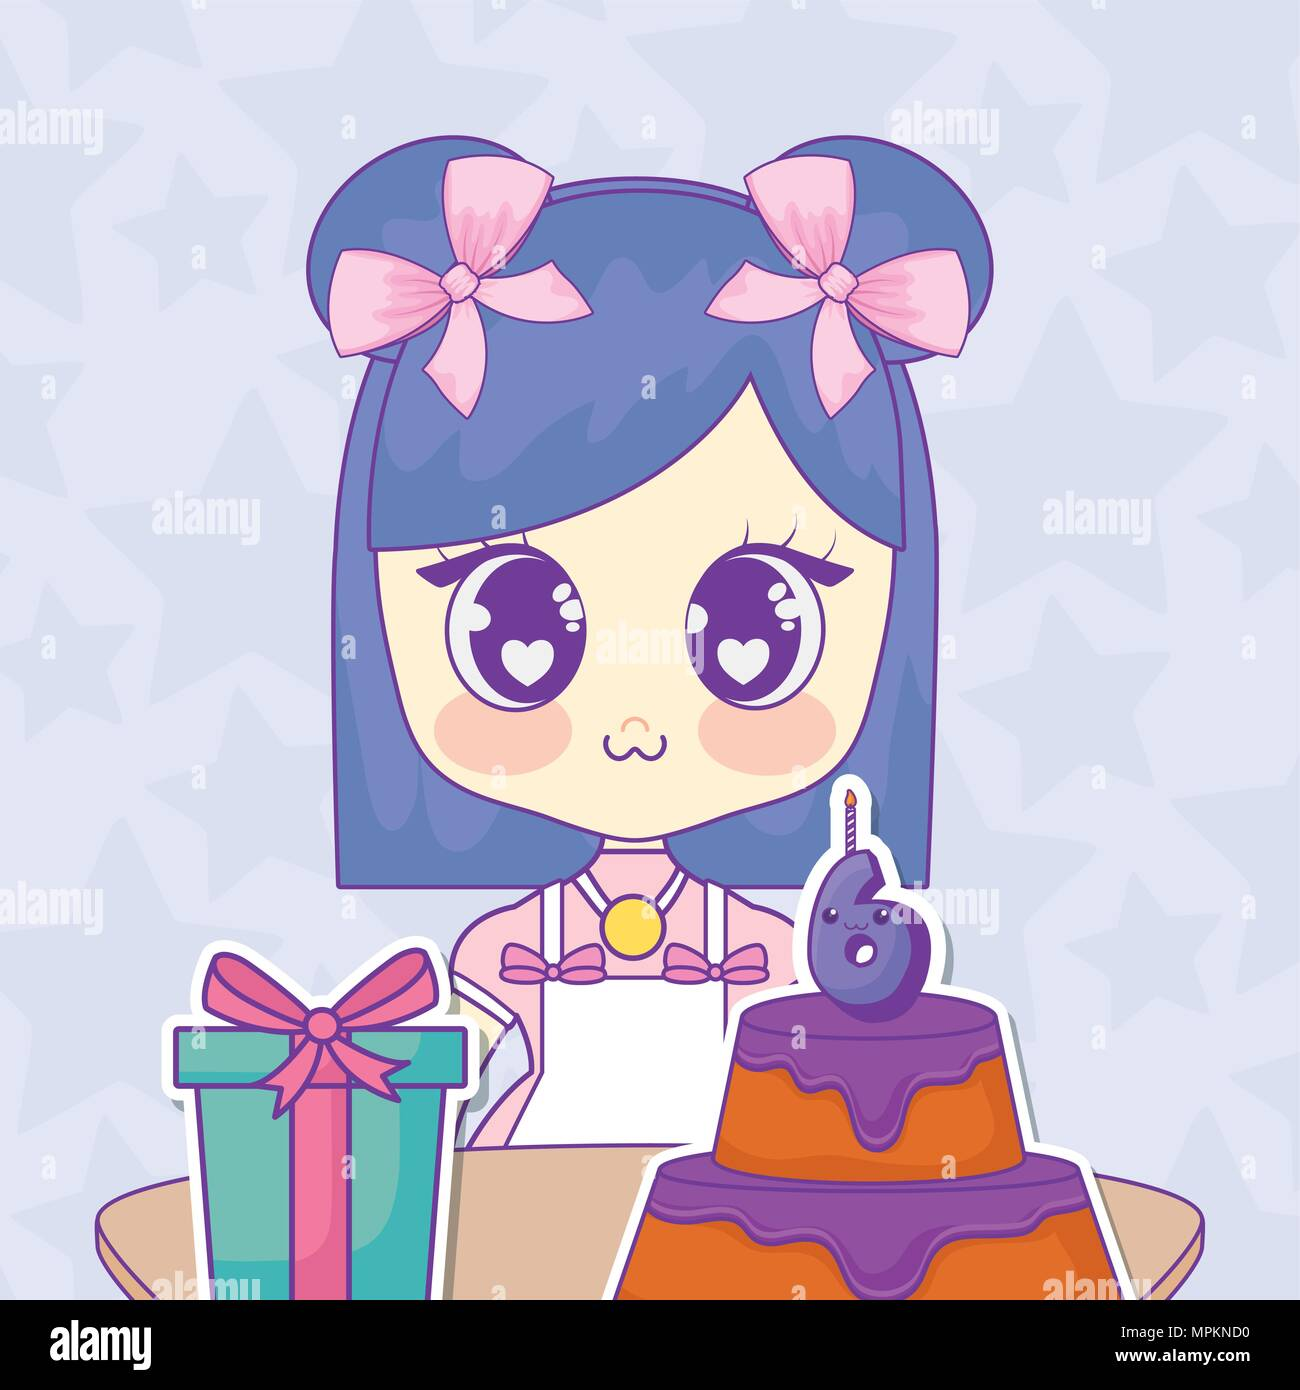 Happy Birthday Design With Anime Girl With Birthday Cake And Gift